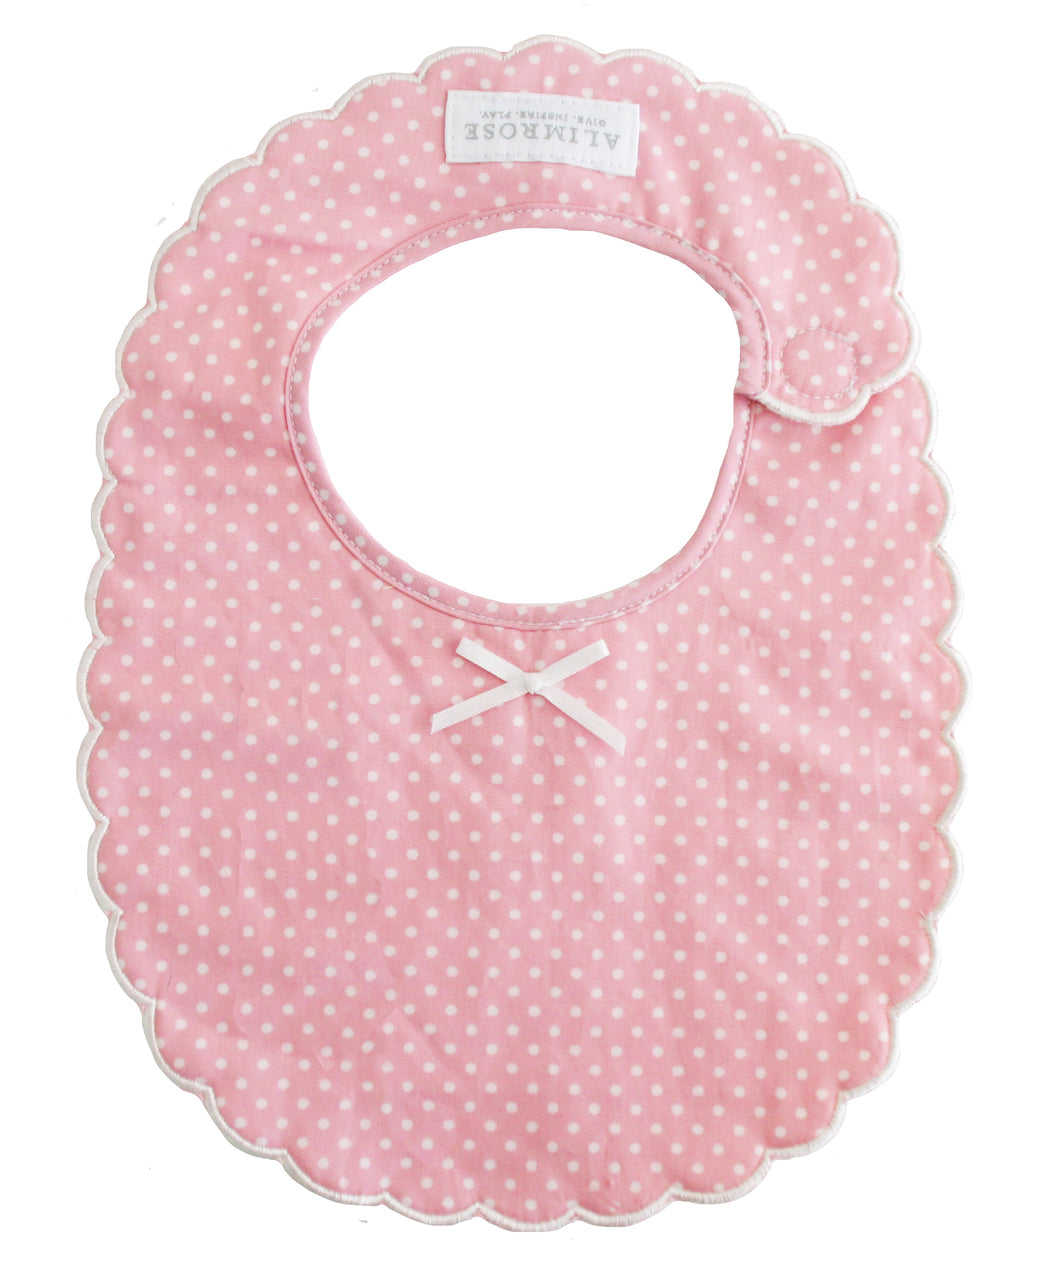 Scallop Edge Bib - Pink with Ivory Spot